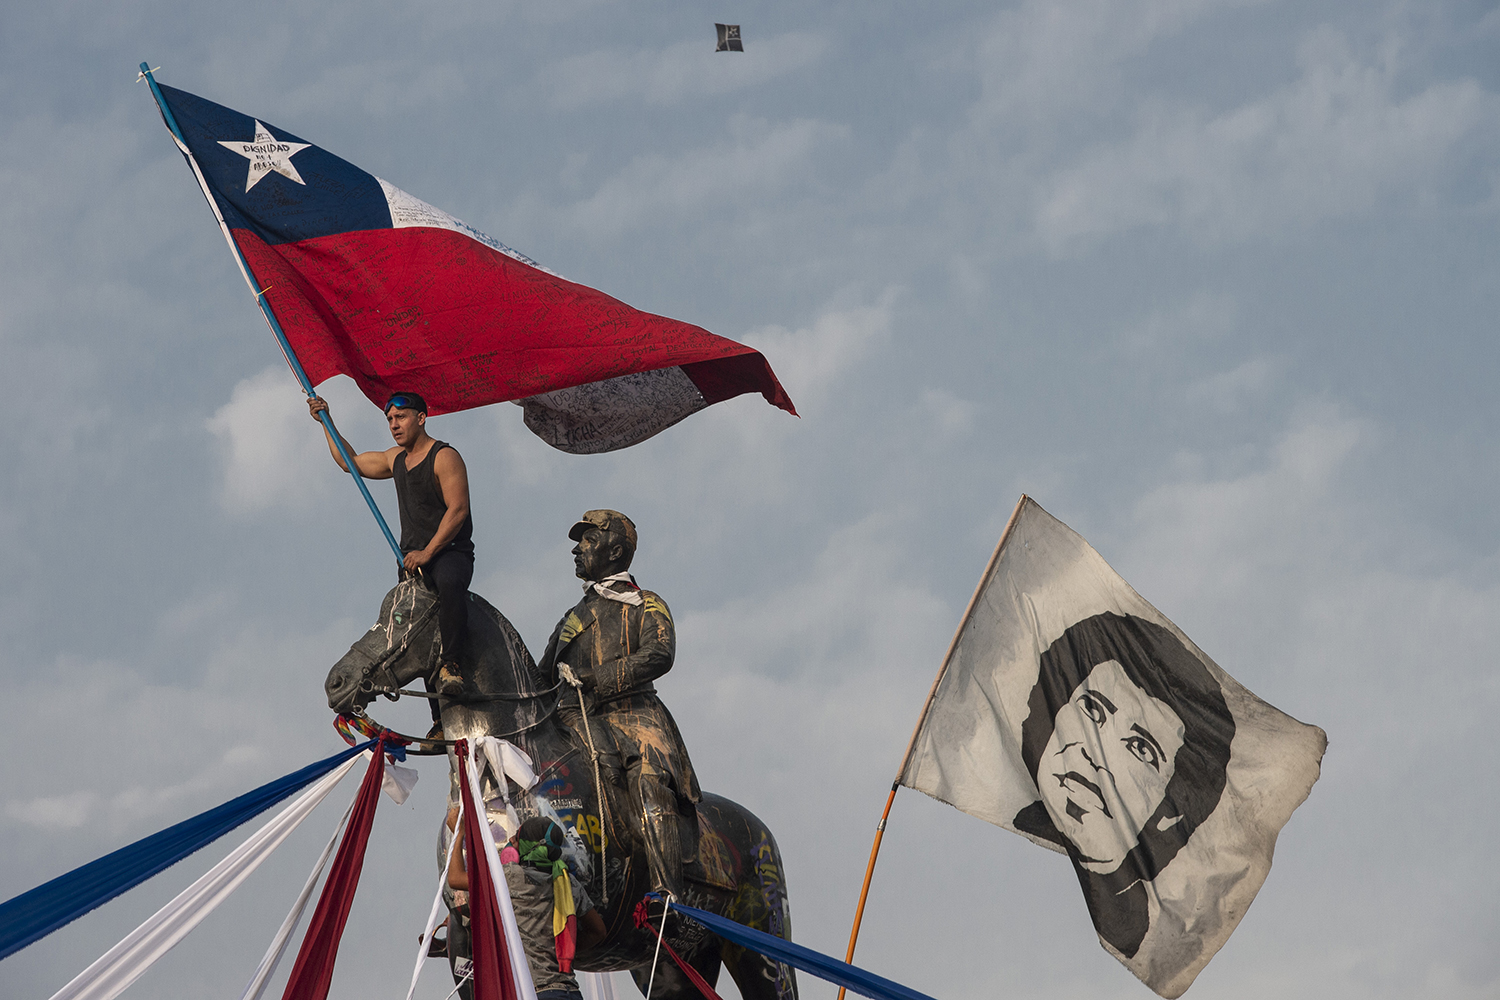 A demonstrator waves a Chilean flag next to another flag depicting late Chilean musician Victor Jara during a protest against President Sebastian Pinera's government, in Santiago on Jan. 17. MARTIN BERNETTI/AFP via Getty Images